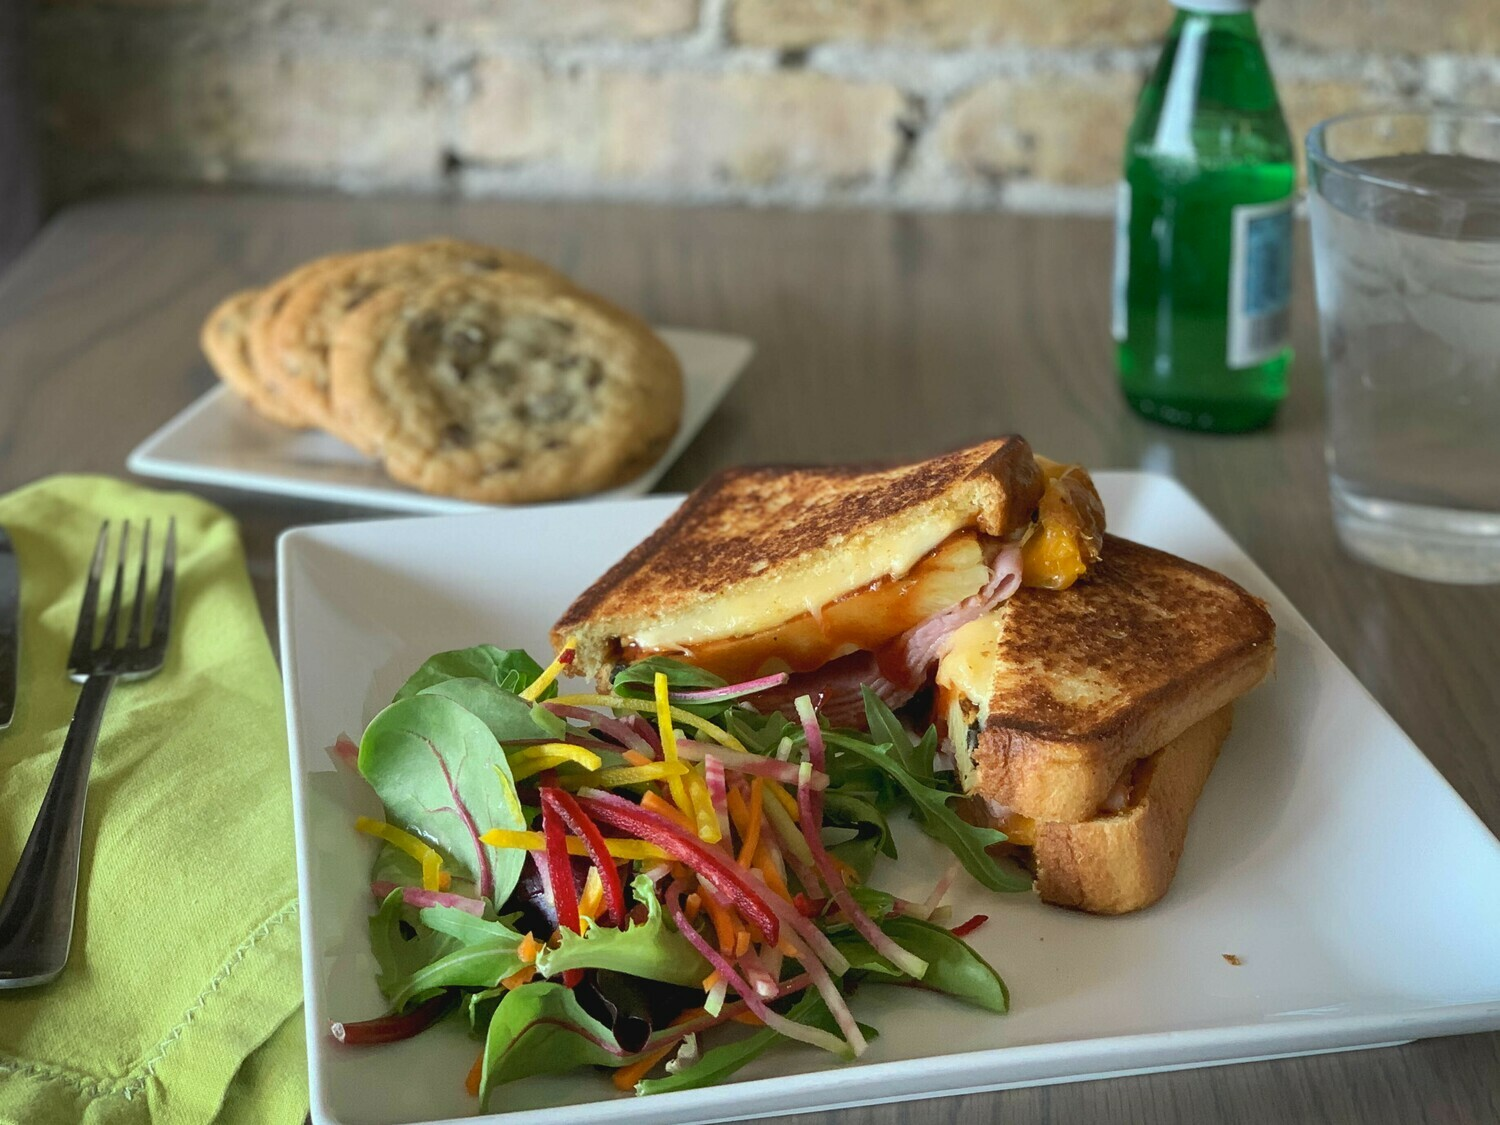 June 24: Pineapple and Ham Grilled Cheese Kits